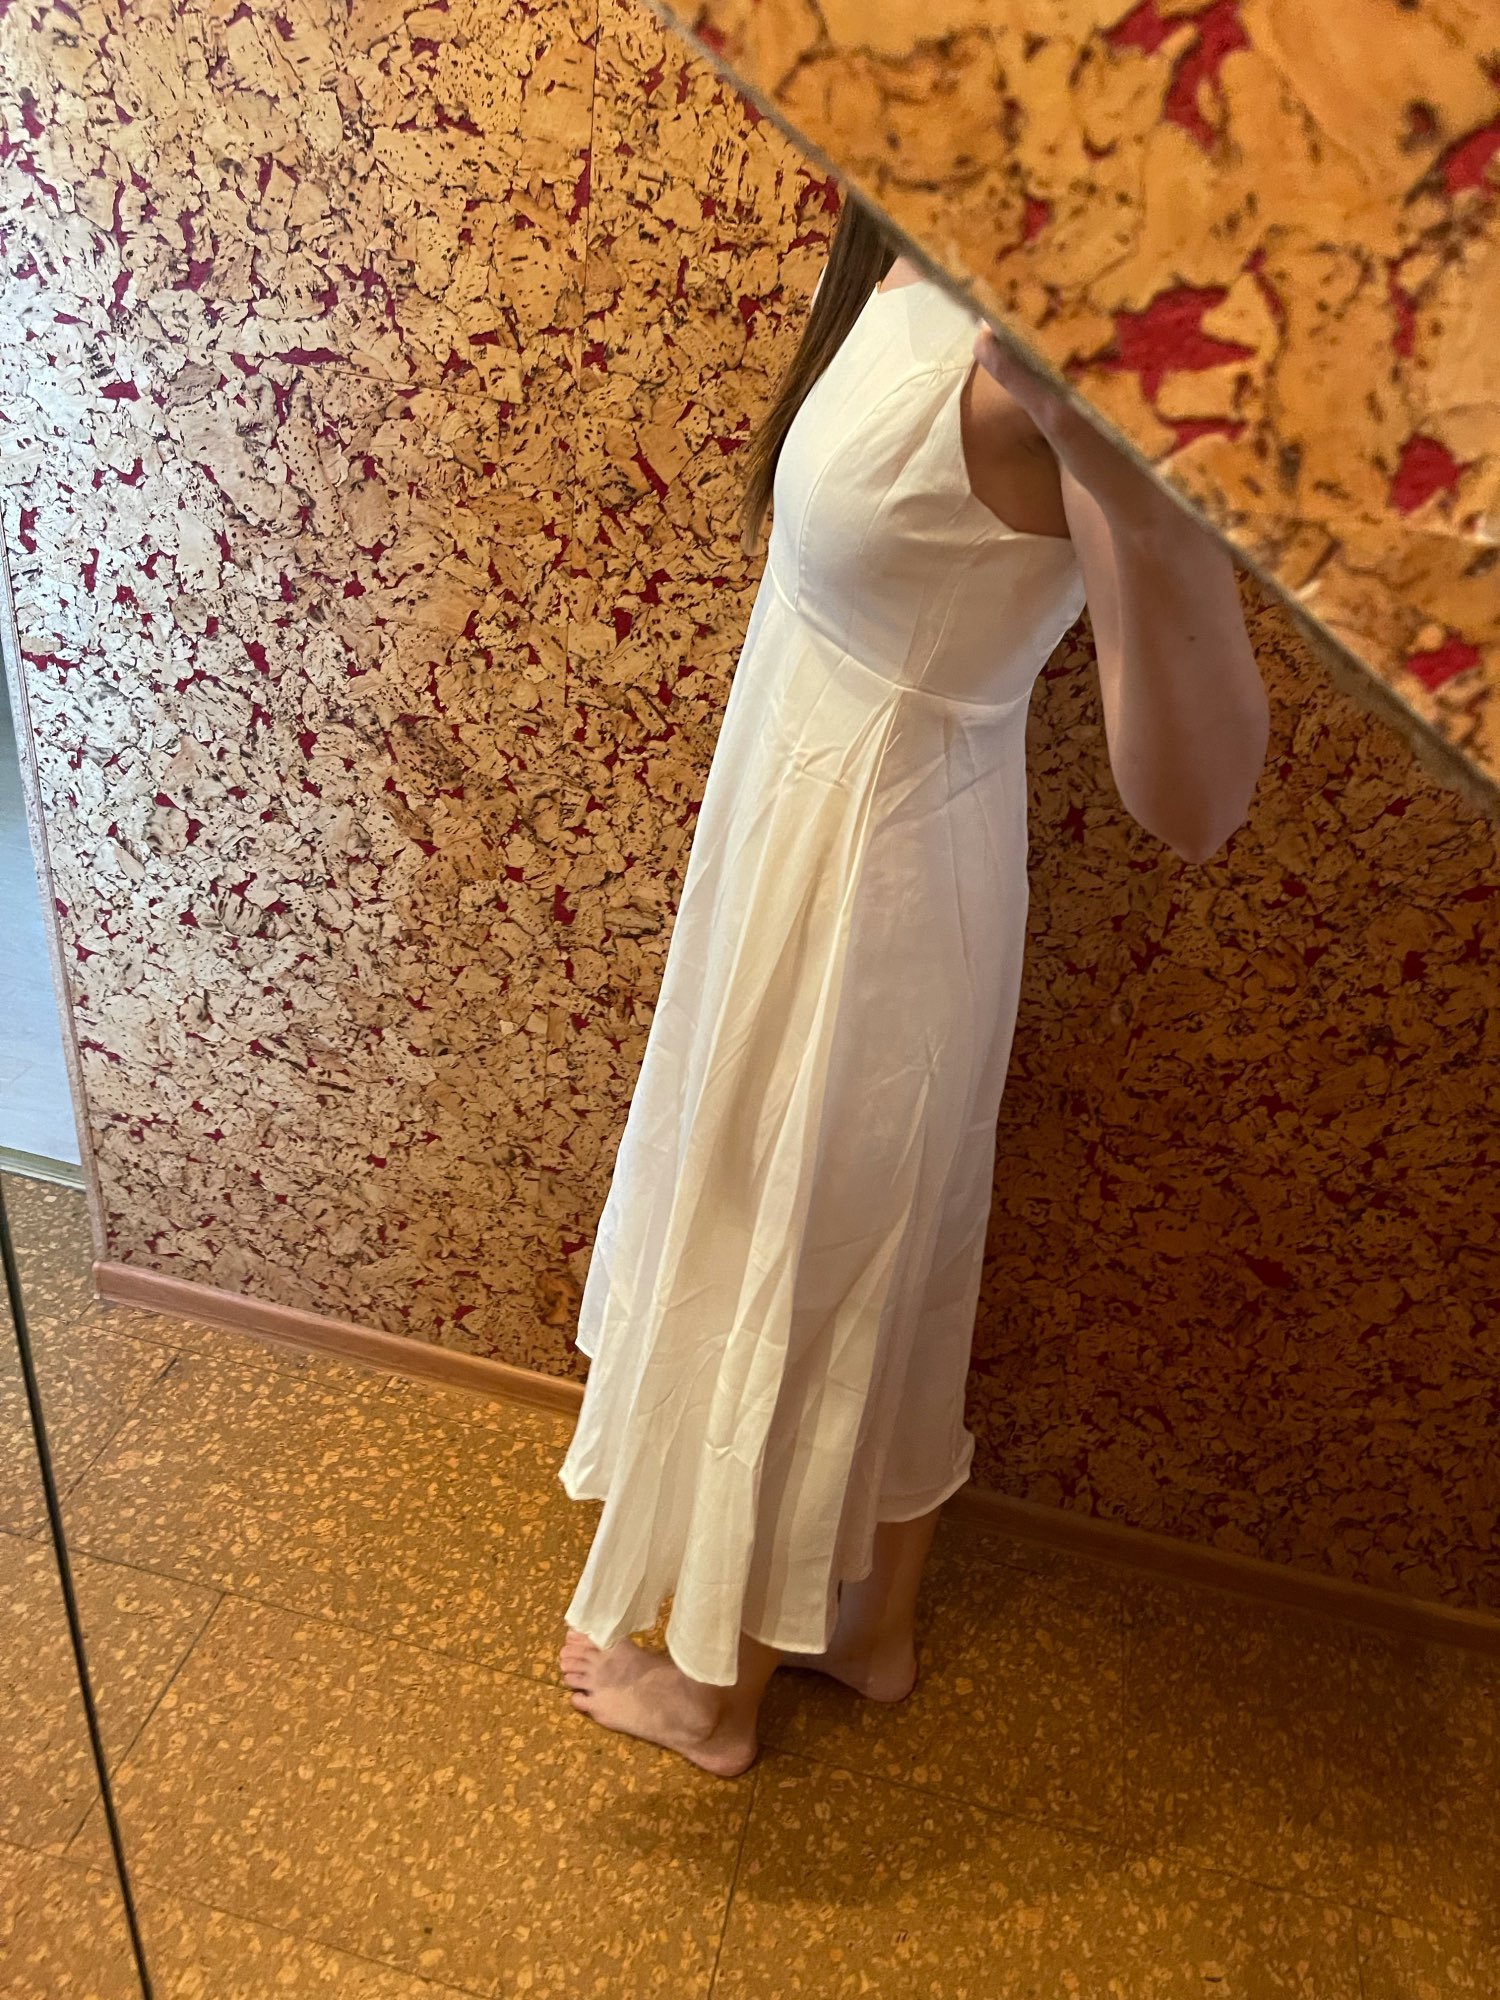 Marwin New Coming Spring Summer Holiday Long Dress Cross Spaghetti Strap Open Back Beach Style Ankle Length Women Dresses Dresses    - AliExpress